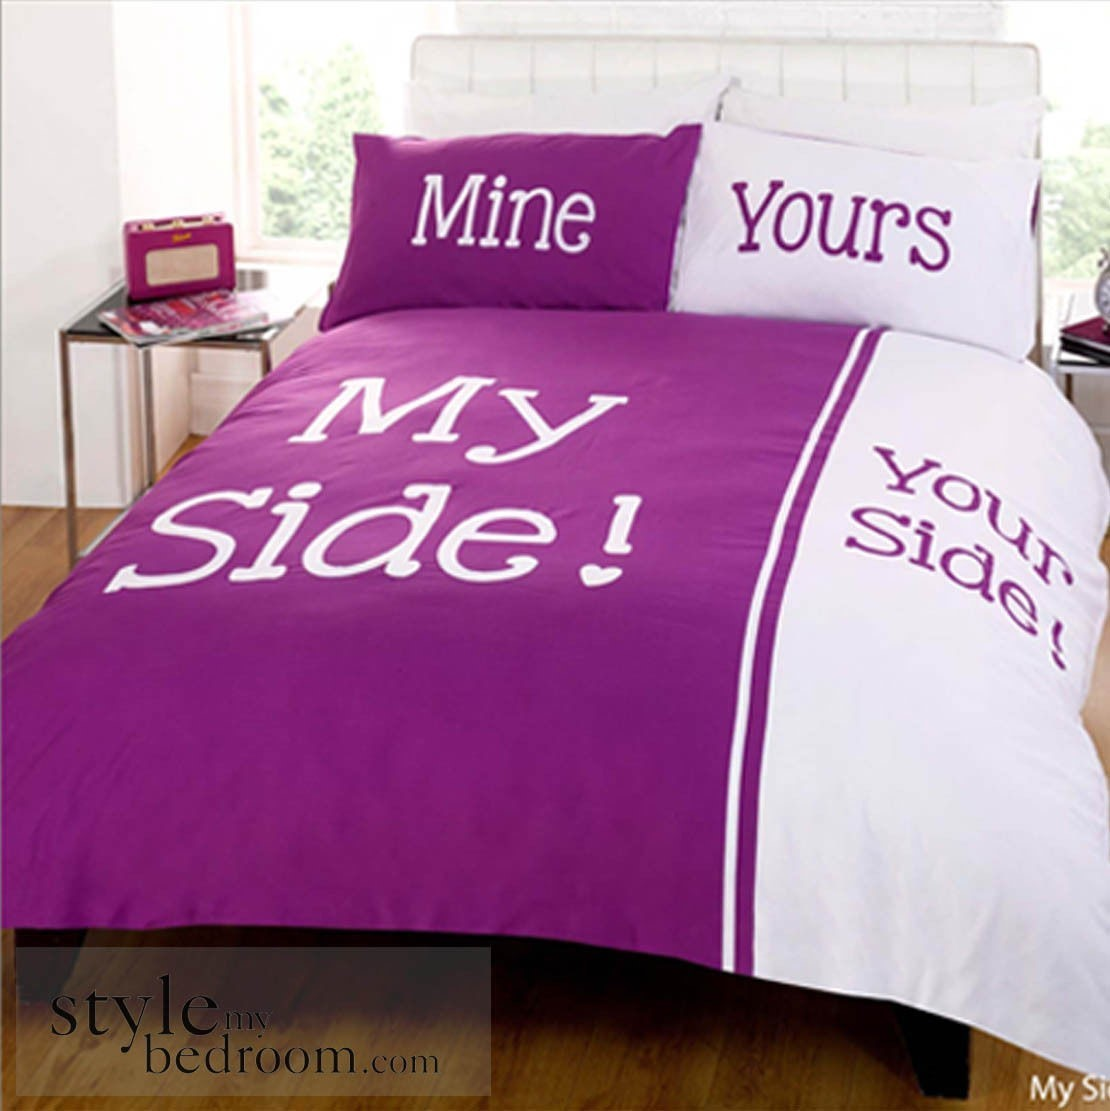 My side your side retro chic duvet quilt cover bedding for Style my bedroom